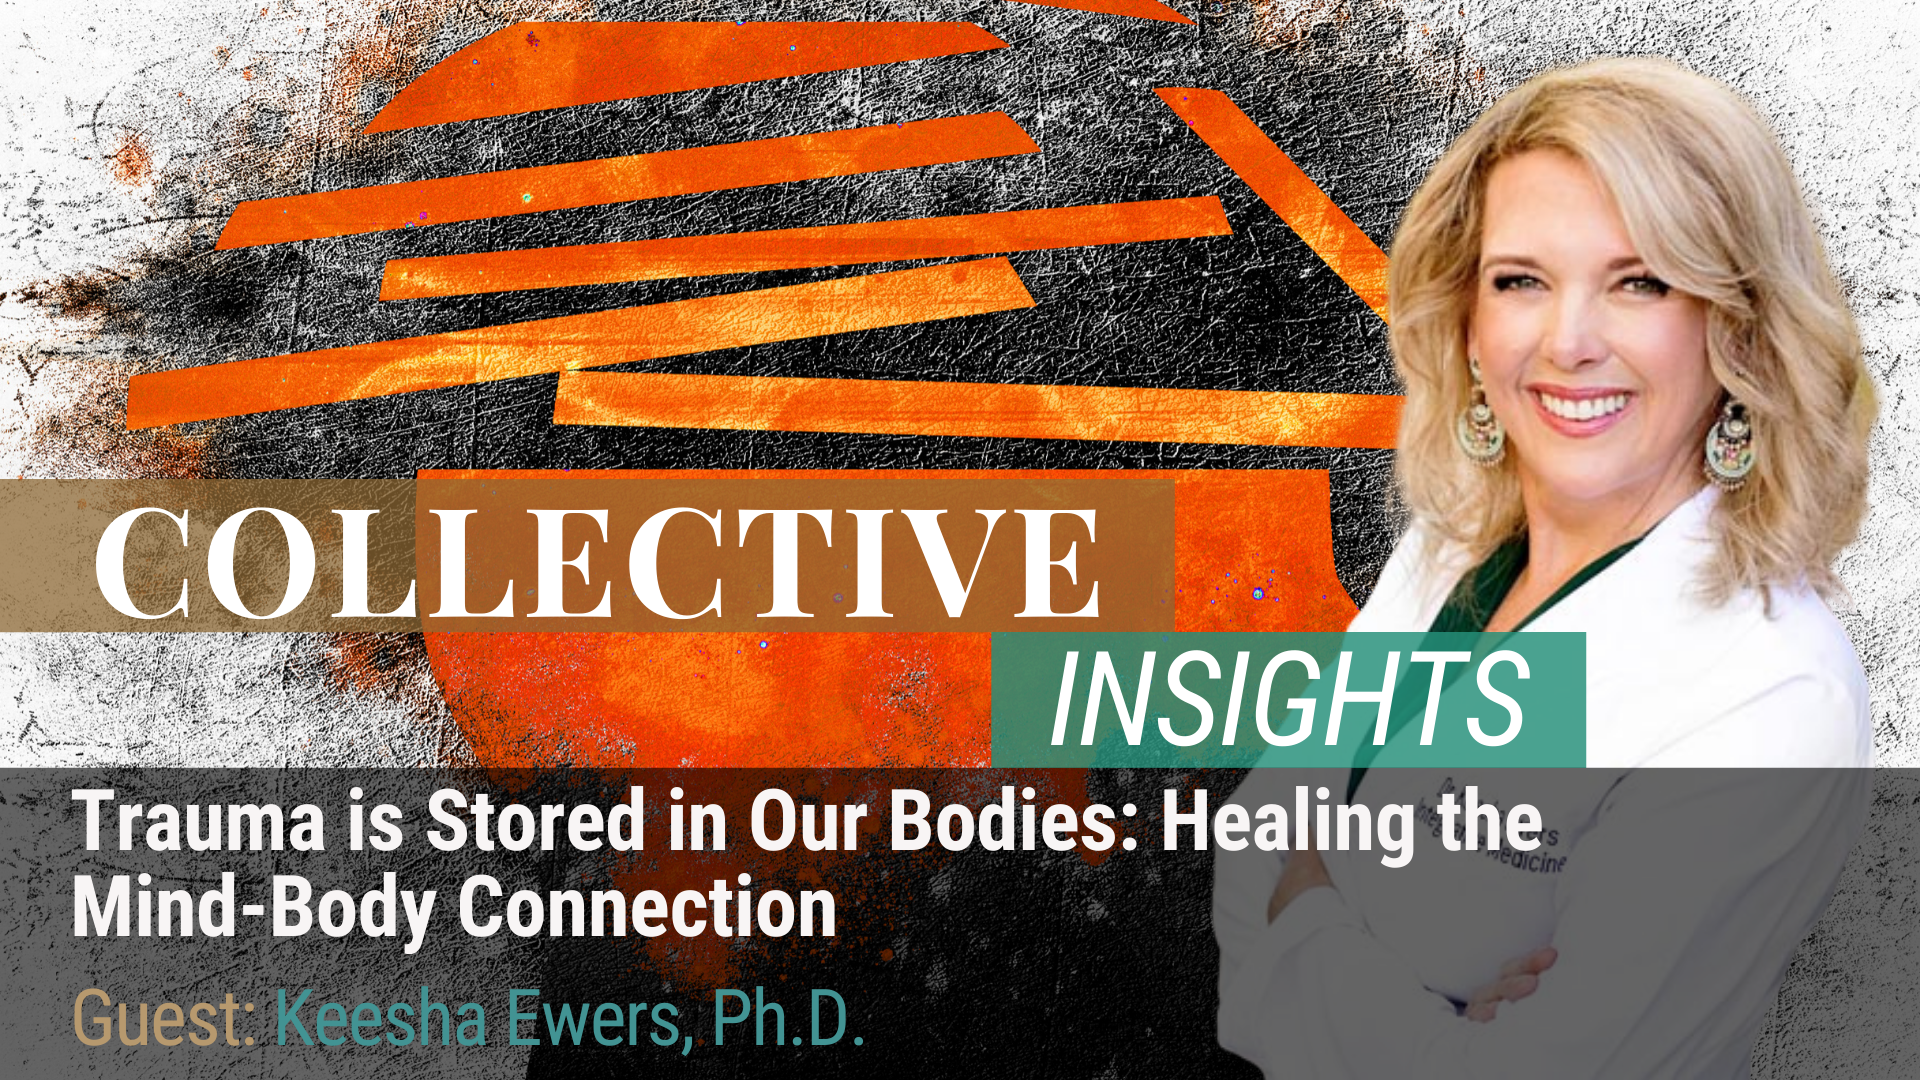 Trauma is Stored in Our Bodies: Healing the Mind-Body Connection